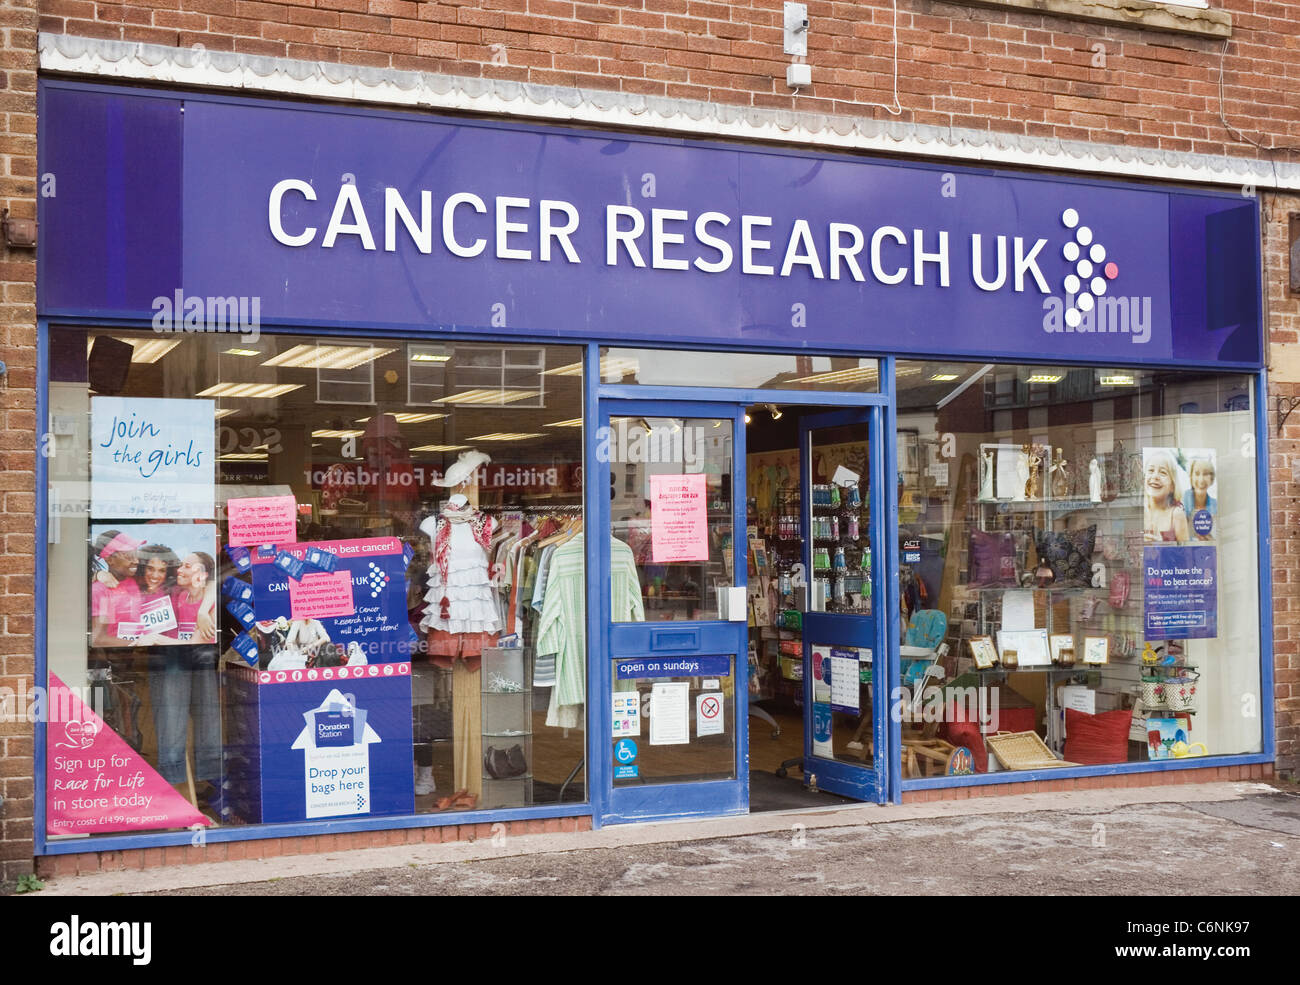 Cleveleys, Blackpool, Lancashire, England. Cancer Research UK charity shop. - Stock Image